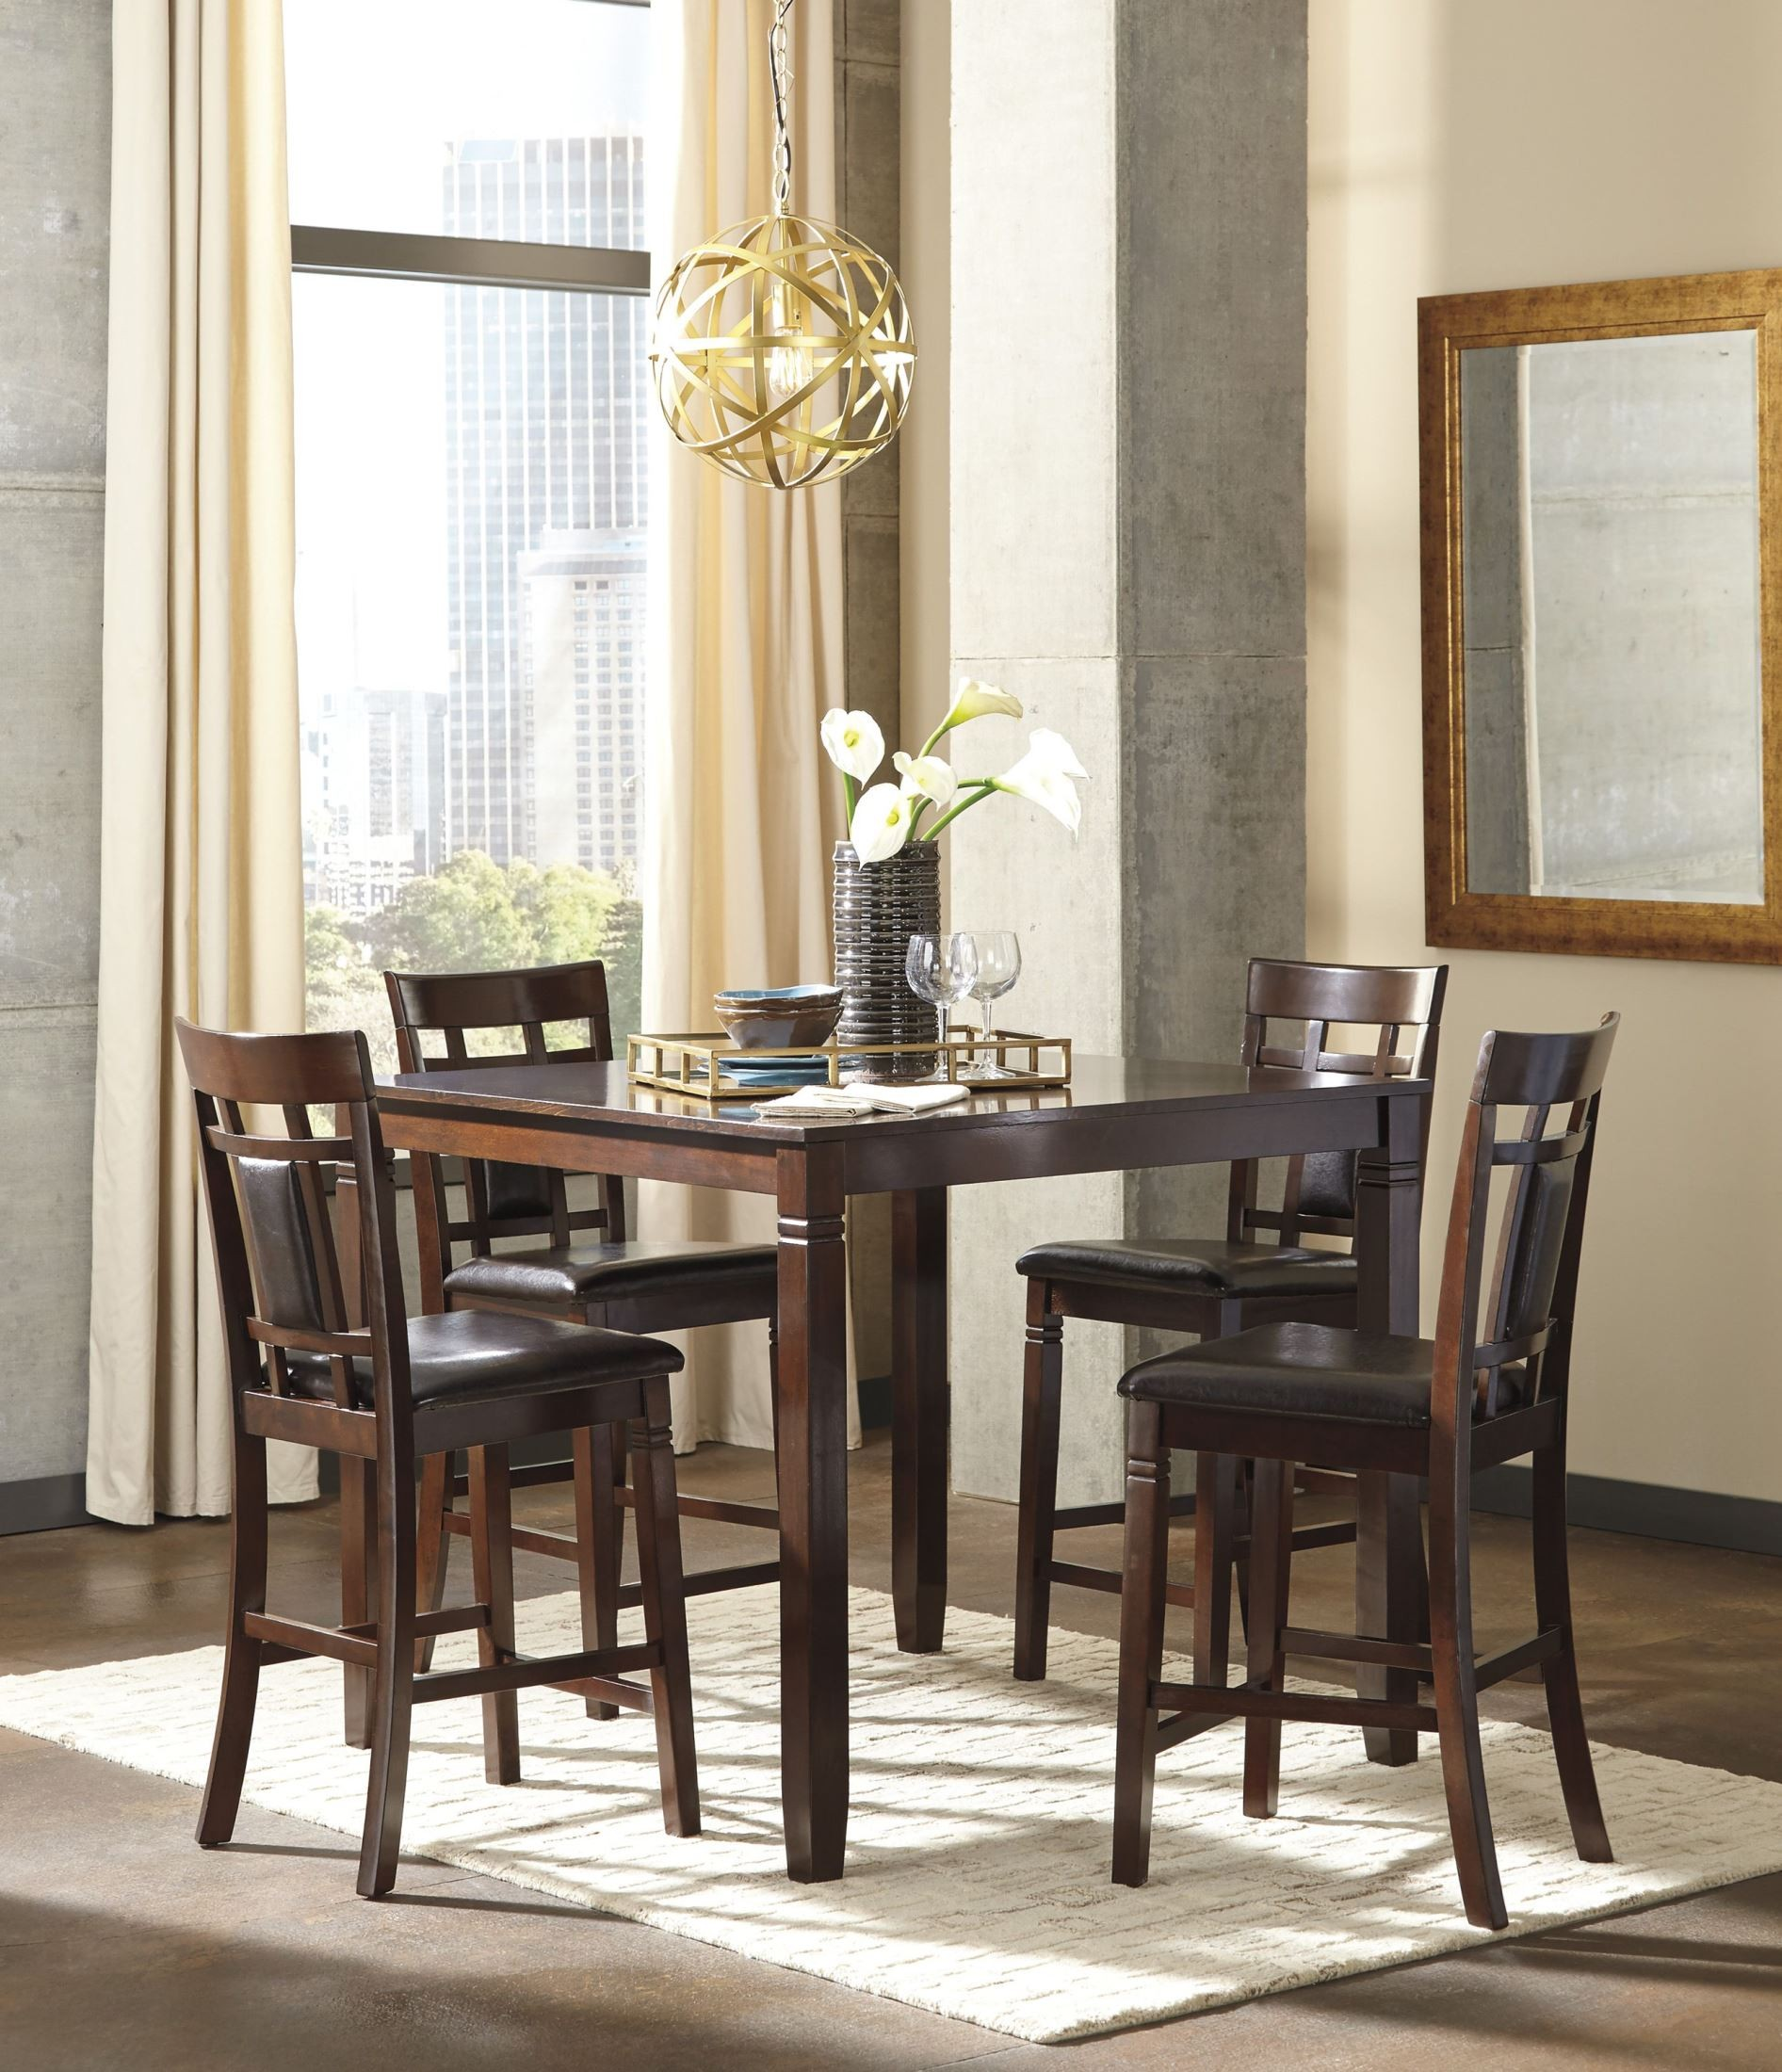 Bennox brown 5 piece counter height dining room set d384 for 2 piece dining room set